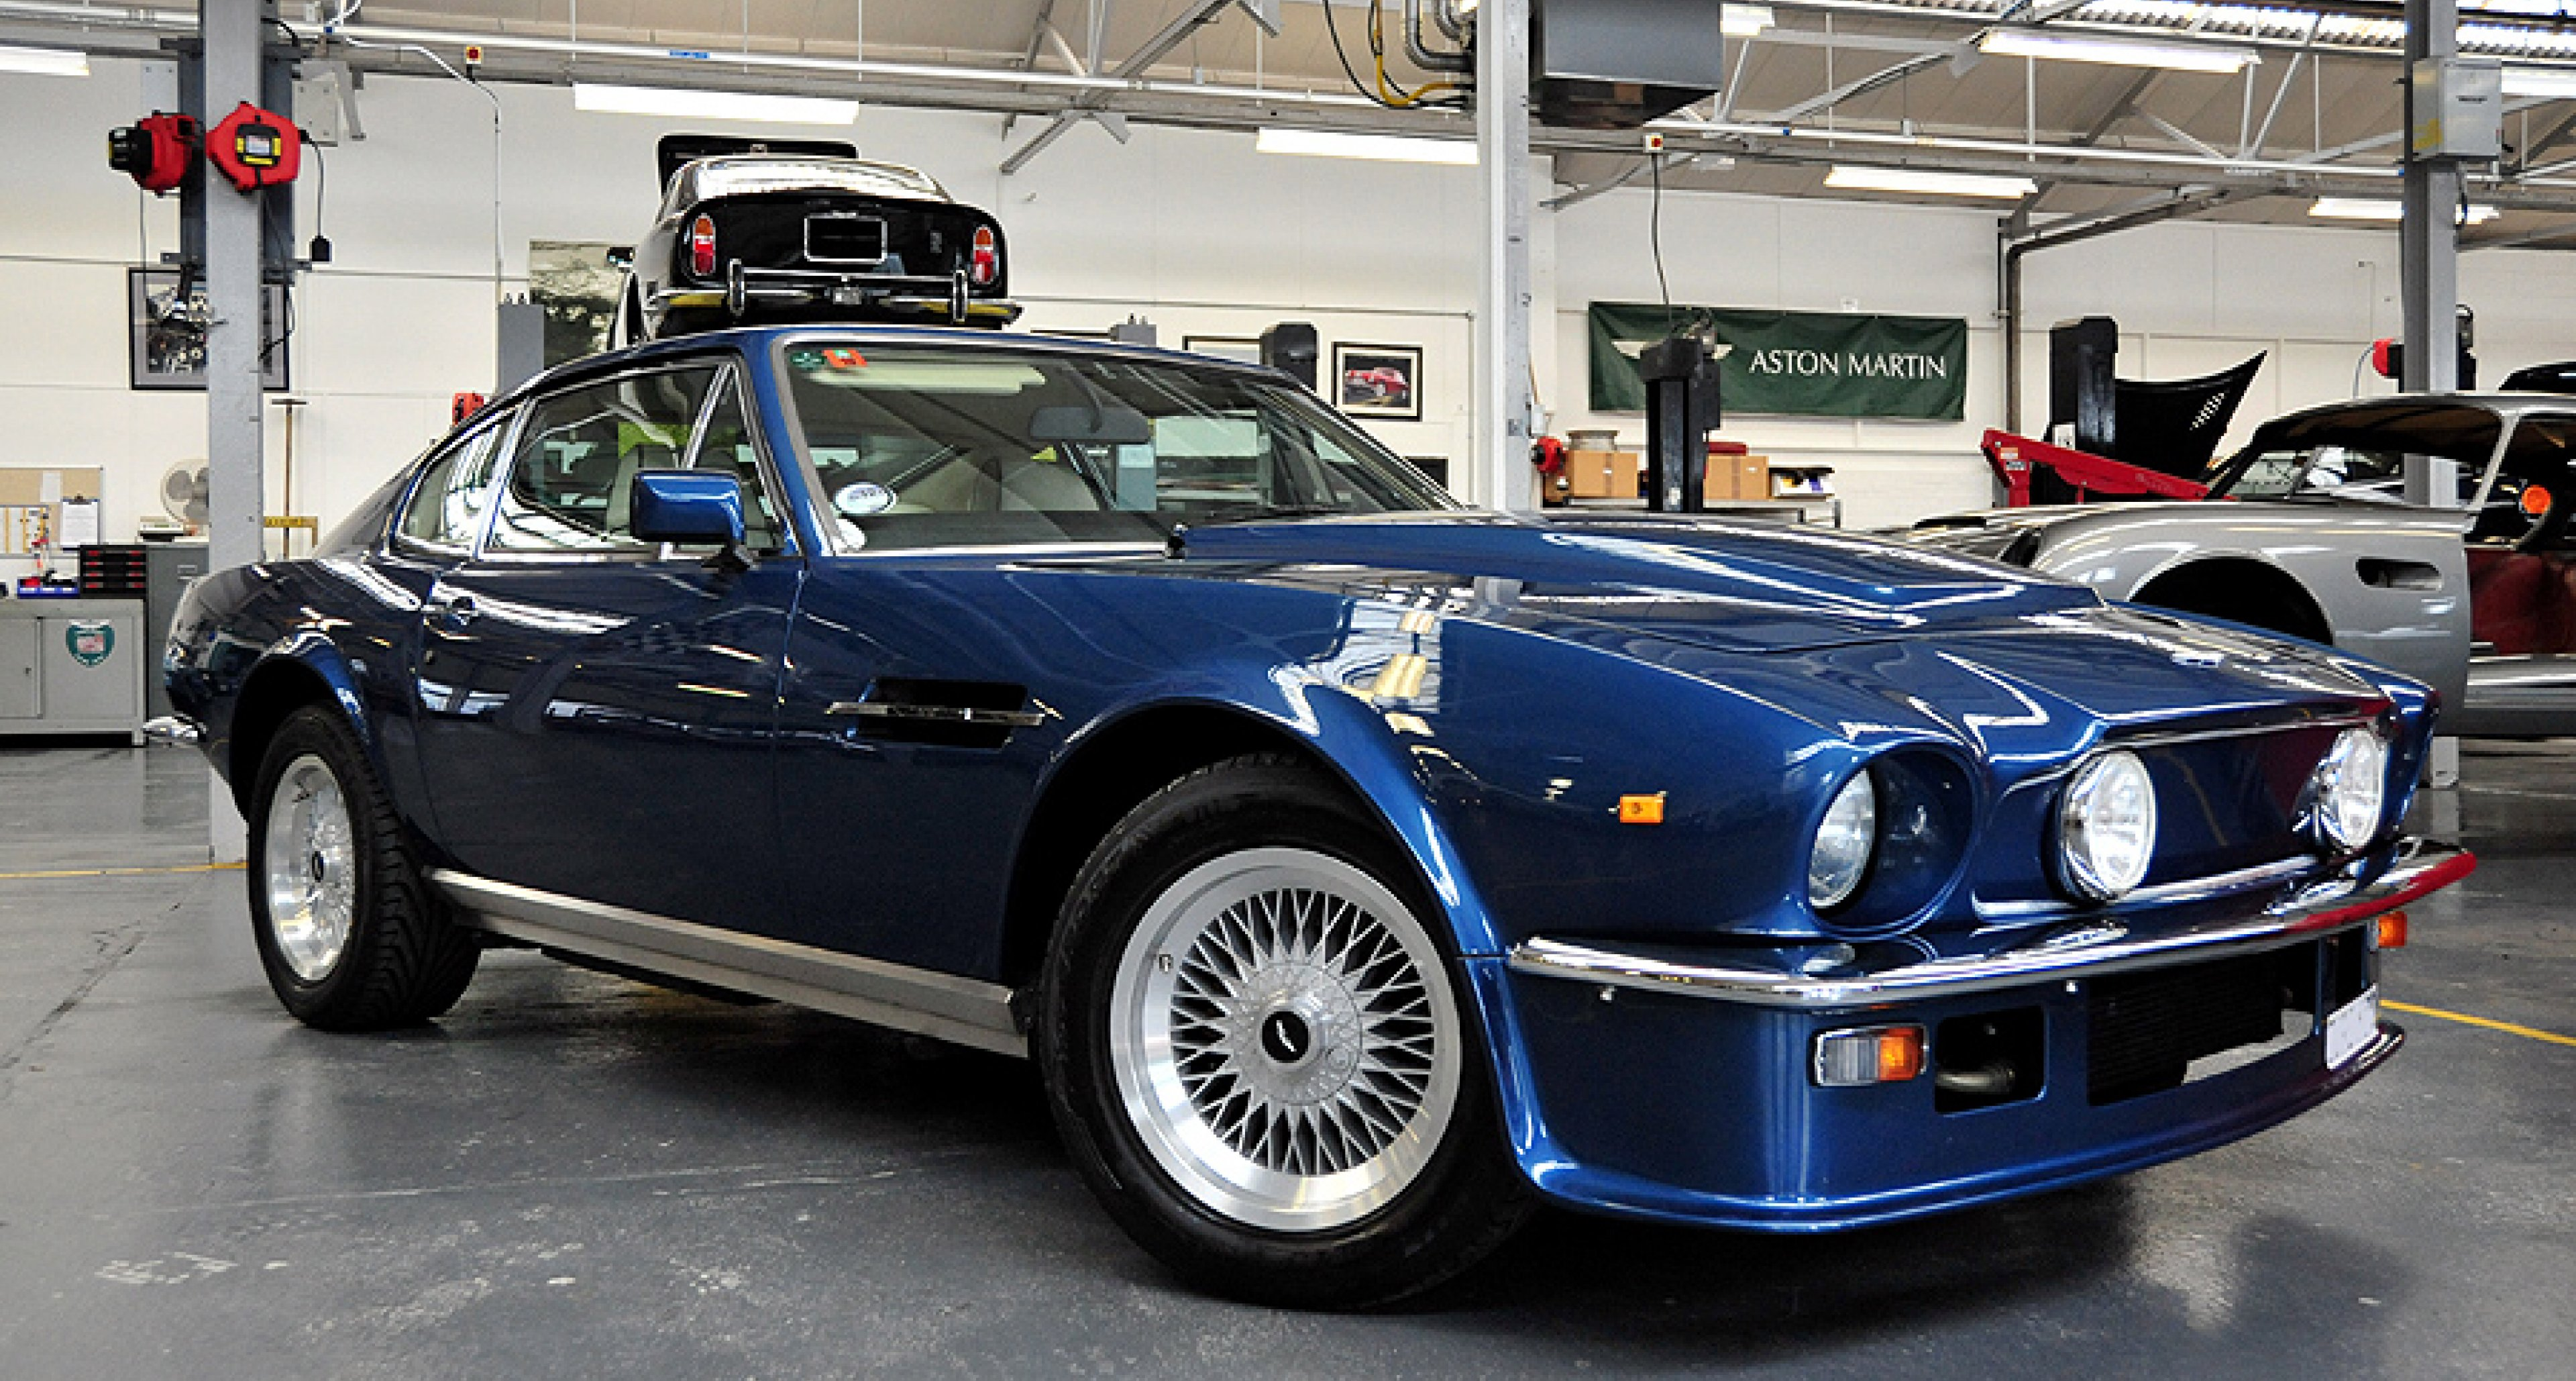 Aston Martin Works Service: V8 Vantage and Saloon, Steering and Brake Upgrades